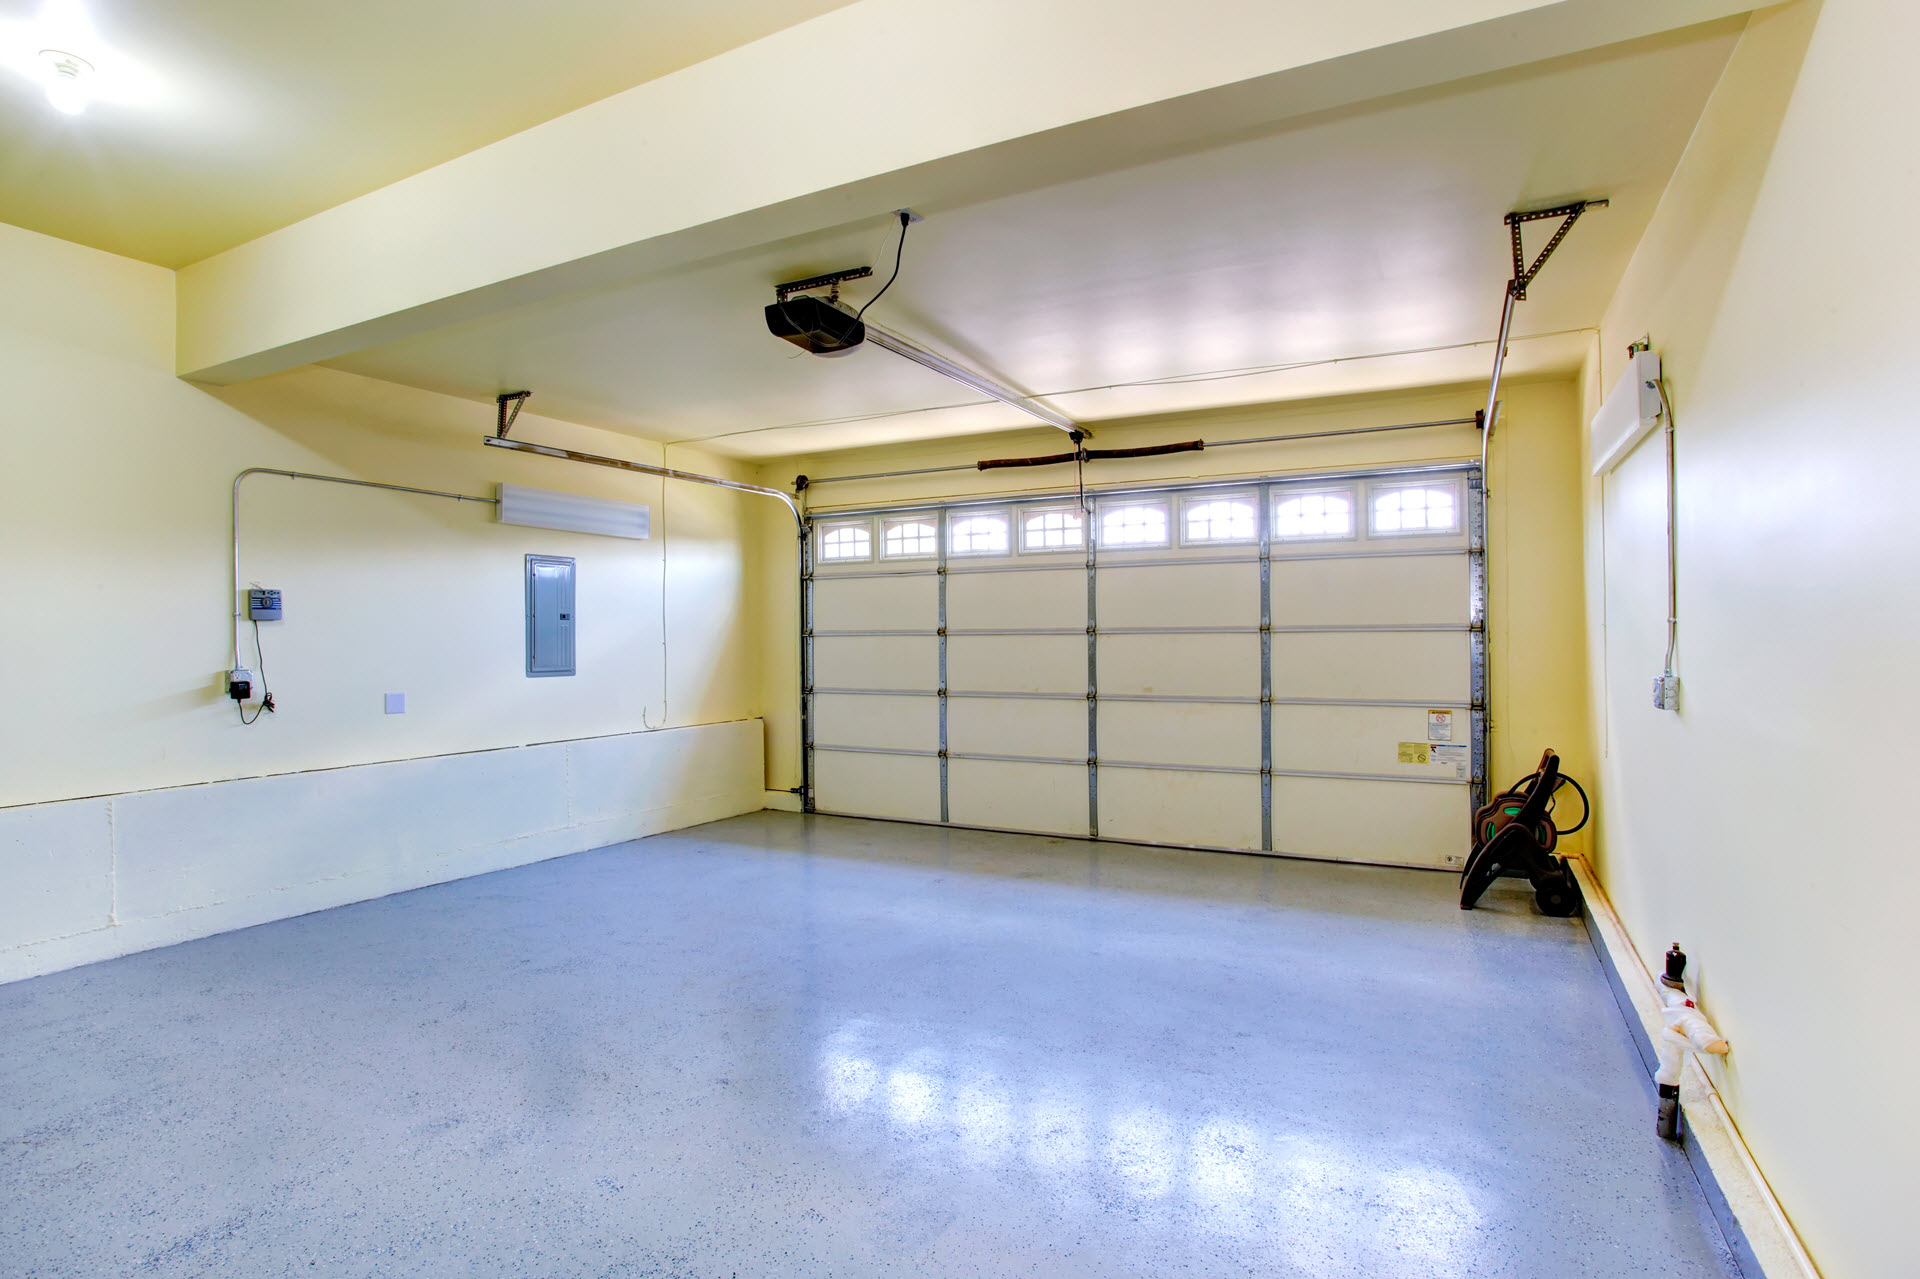 Epoxy Garage Floor Toronto Basement Flooring Concrete Polishing Applications Polished Floors